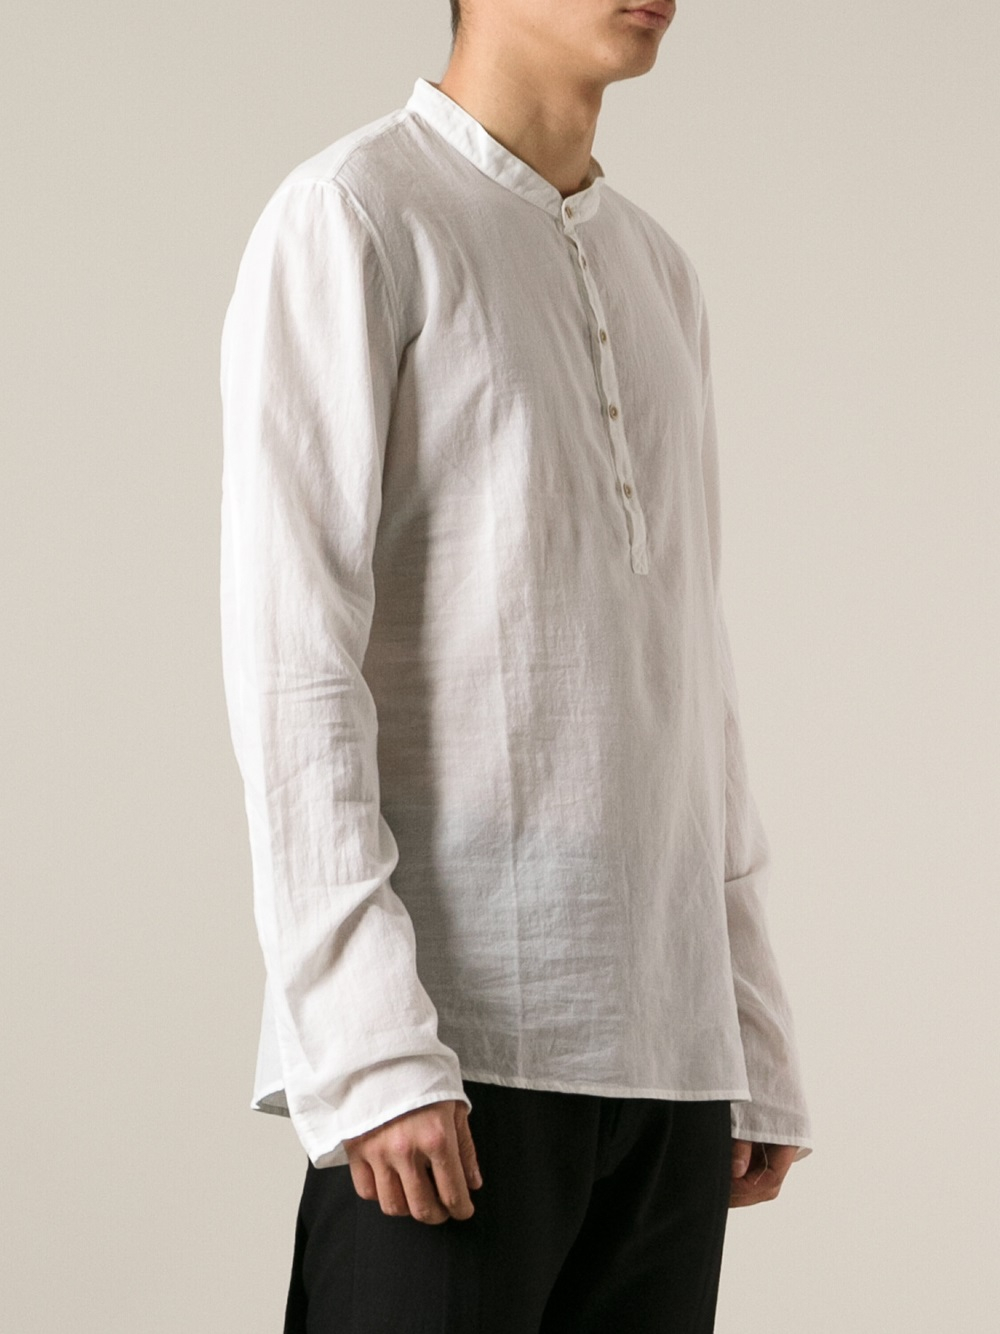 Lyst Poeme Bohemien Kaftan Style Shirt In White For Men